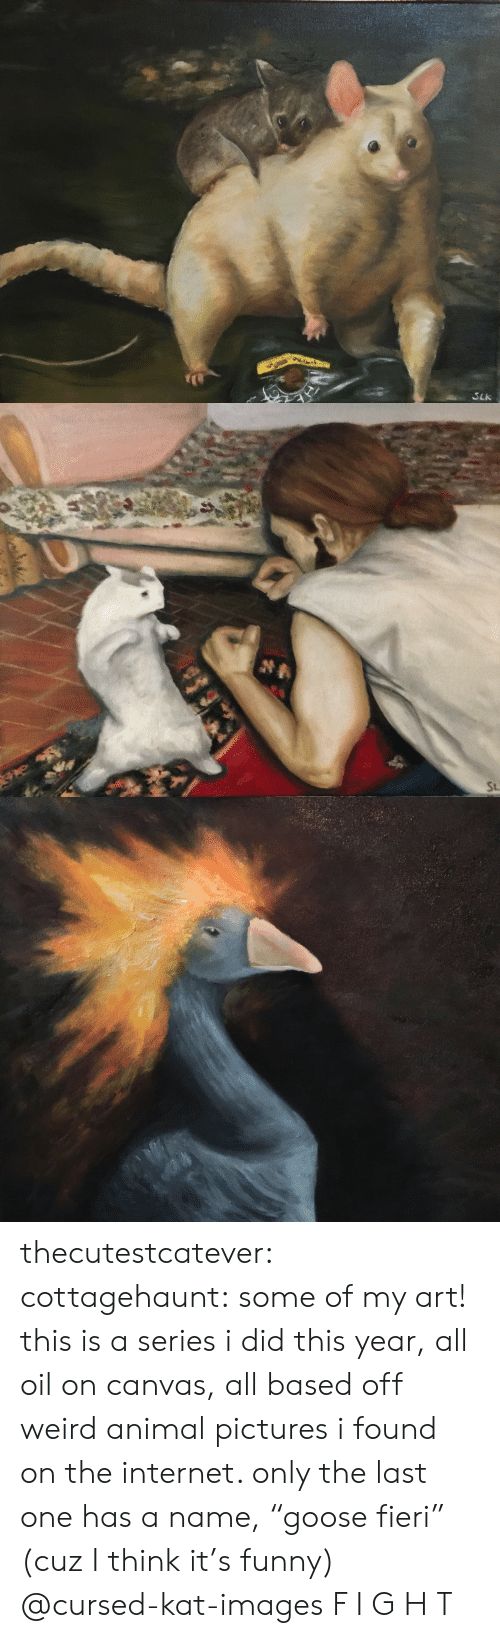 """kat: SLk   St thecutestcatever:  cottagehaunt:  some of my art! this is a series i did this year, all oil on canvas, all based off weird animal pictures i found on the internet. only the last one has a name,""""goose fieri"""" (cuz I think it's funny)  @cursed-kat-images   F I G H T"""